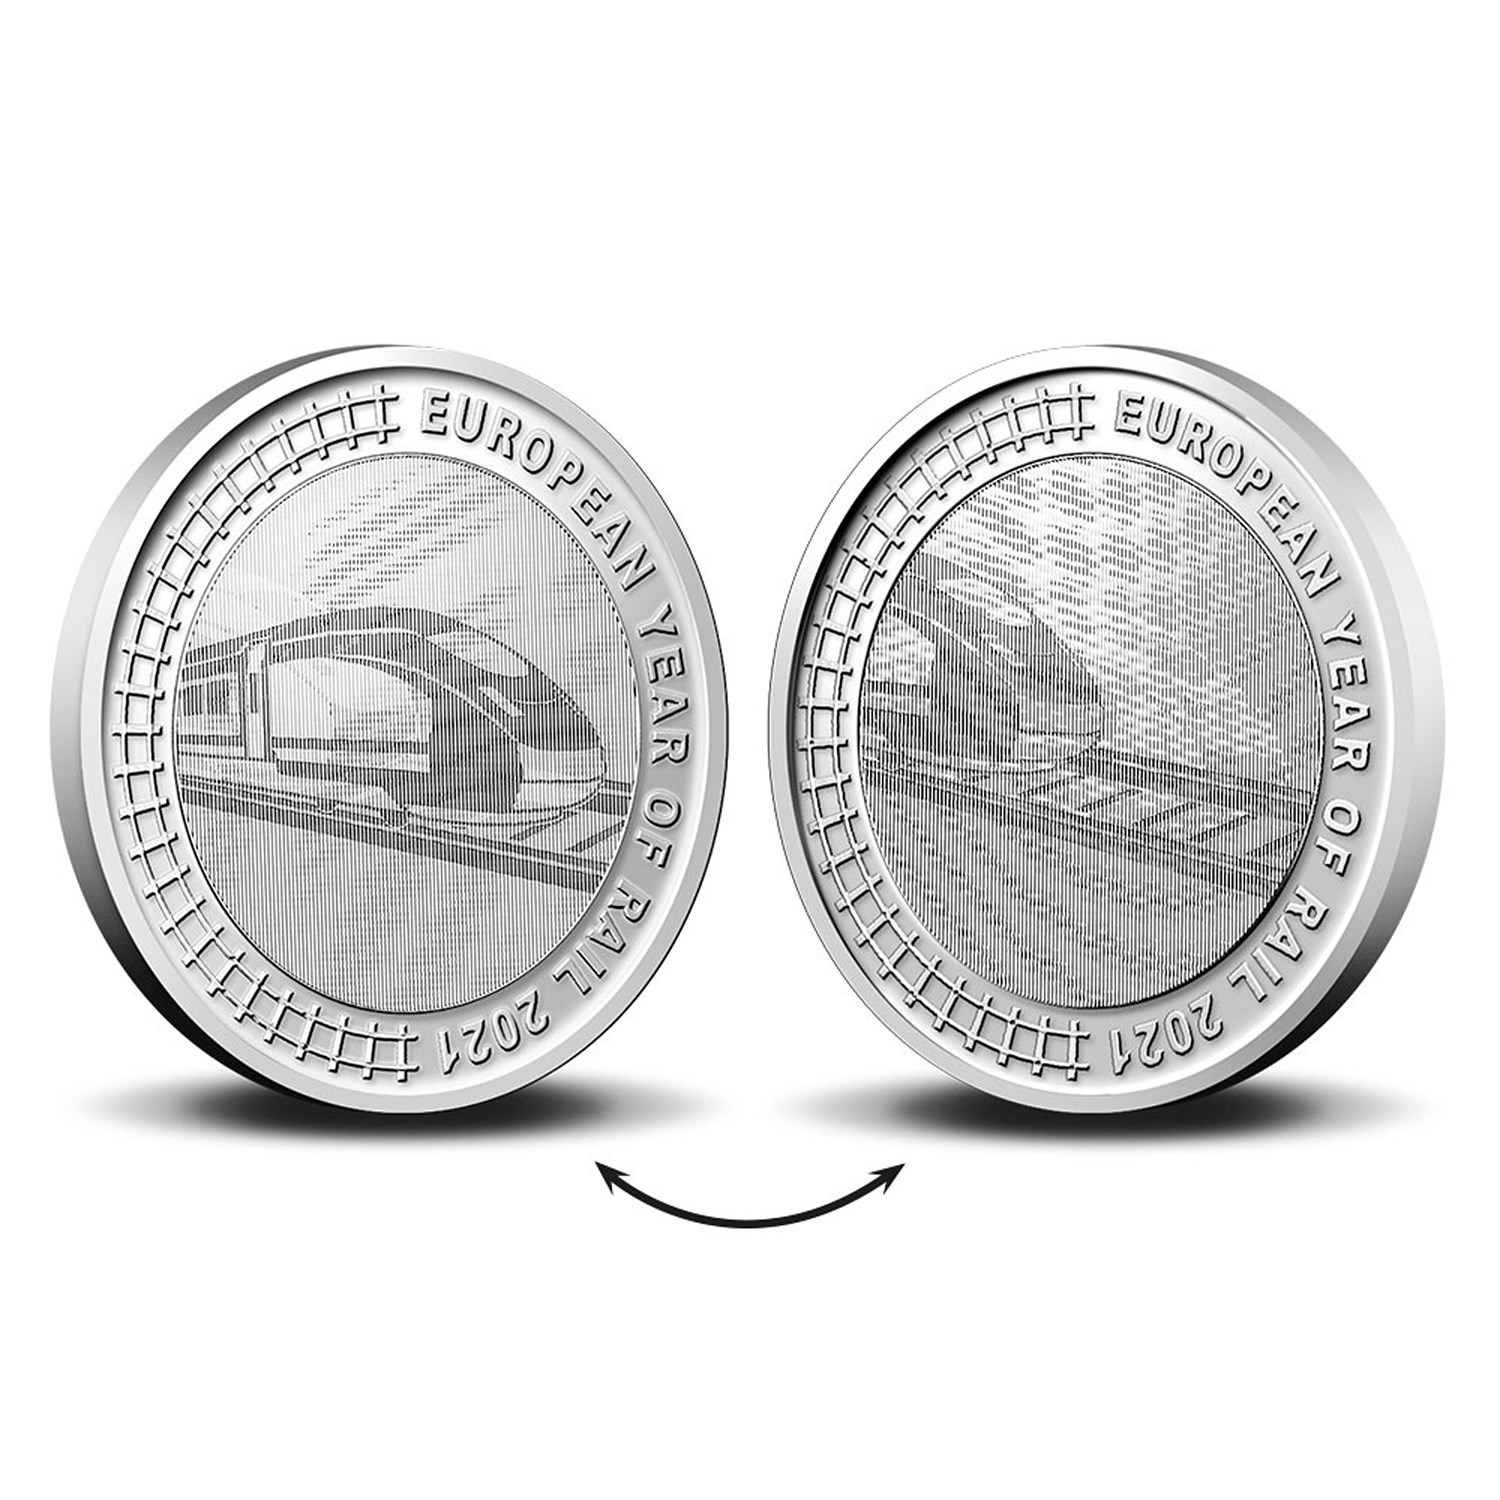 Belgium celebrates the year of the railways with a €5 coin in 2021